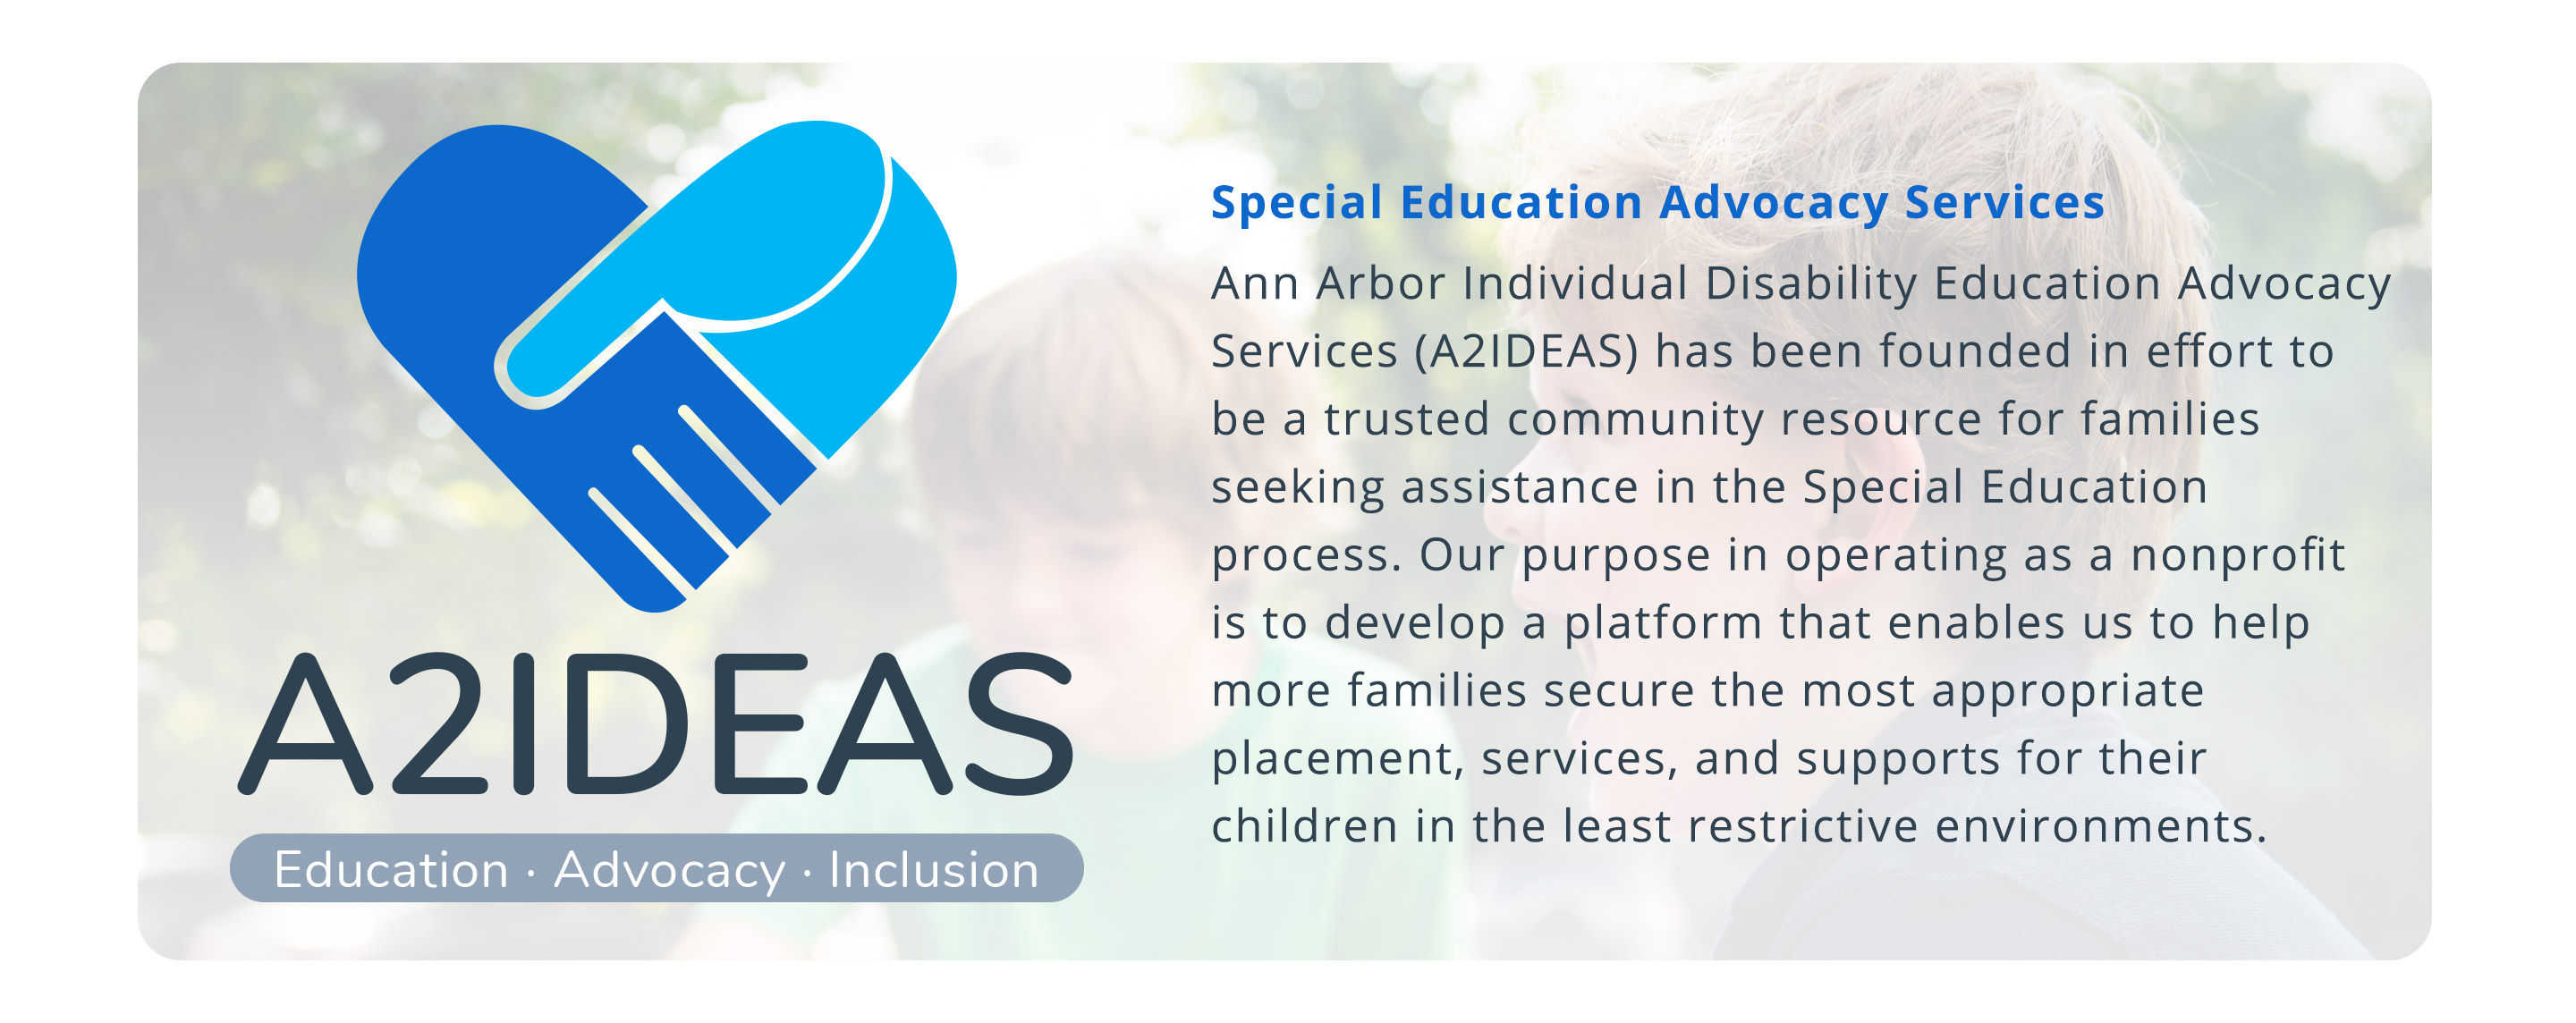 Special Education Advocacy Services Ann Arbor Individual Disability Education Advocacy Services (A2IDEAS) has been founded in effort to be a trusted community resource for families seeking assistance in the Special Education process. Our purpose in operating as a nonprofit is to develop a platform that enables us to help more families secure the most appropriate placement, services, and supports for their children in the least restrictive environments.